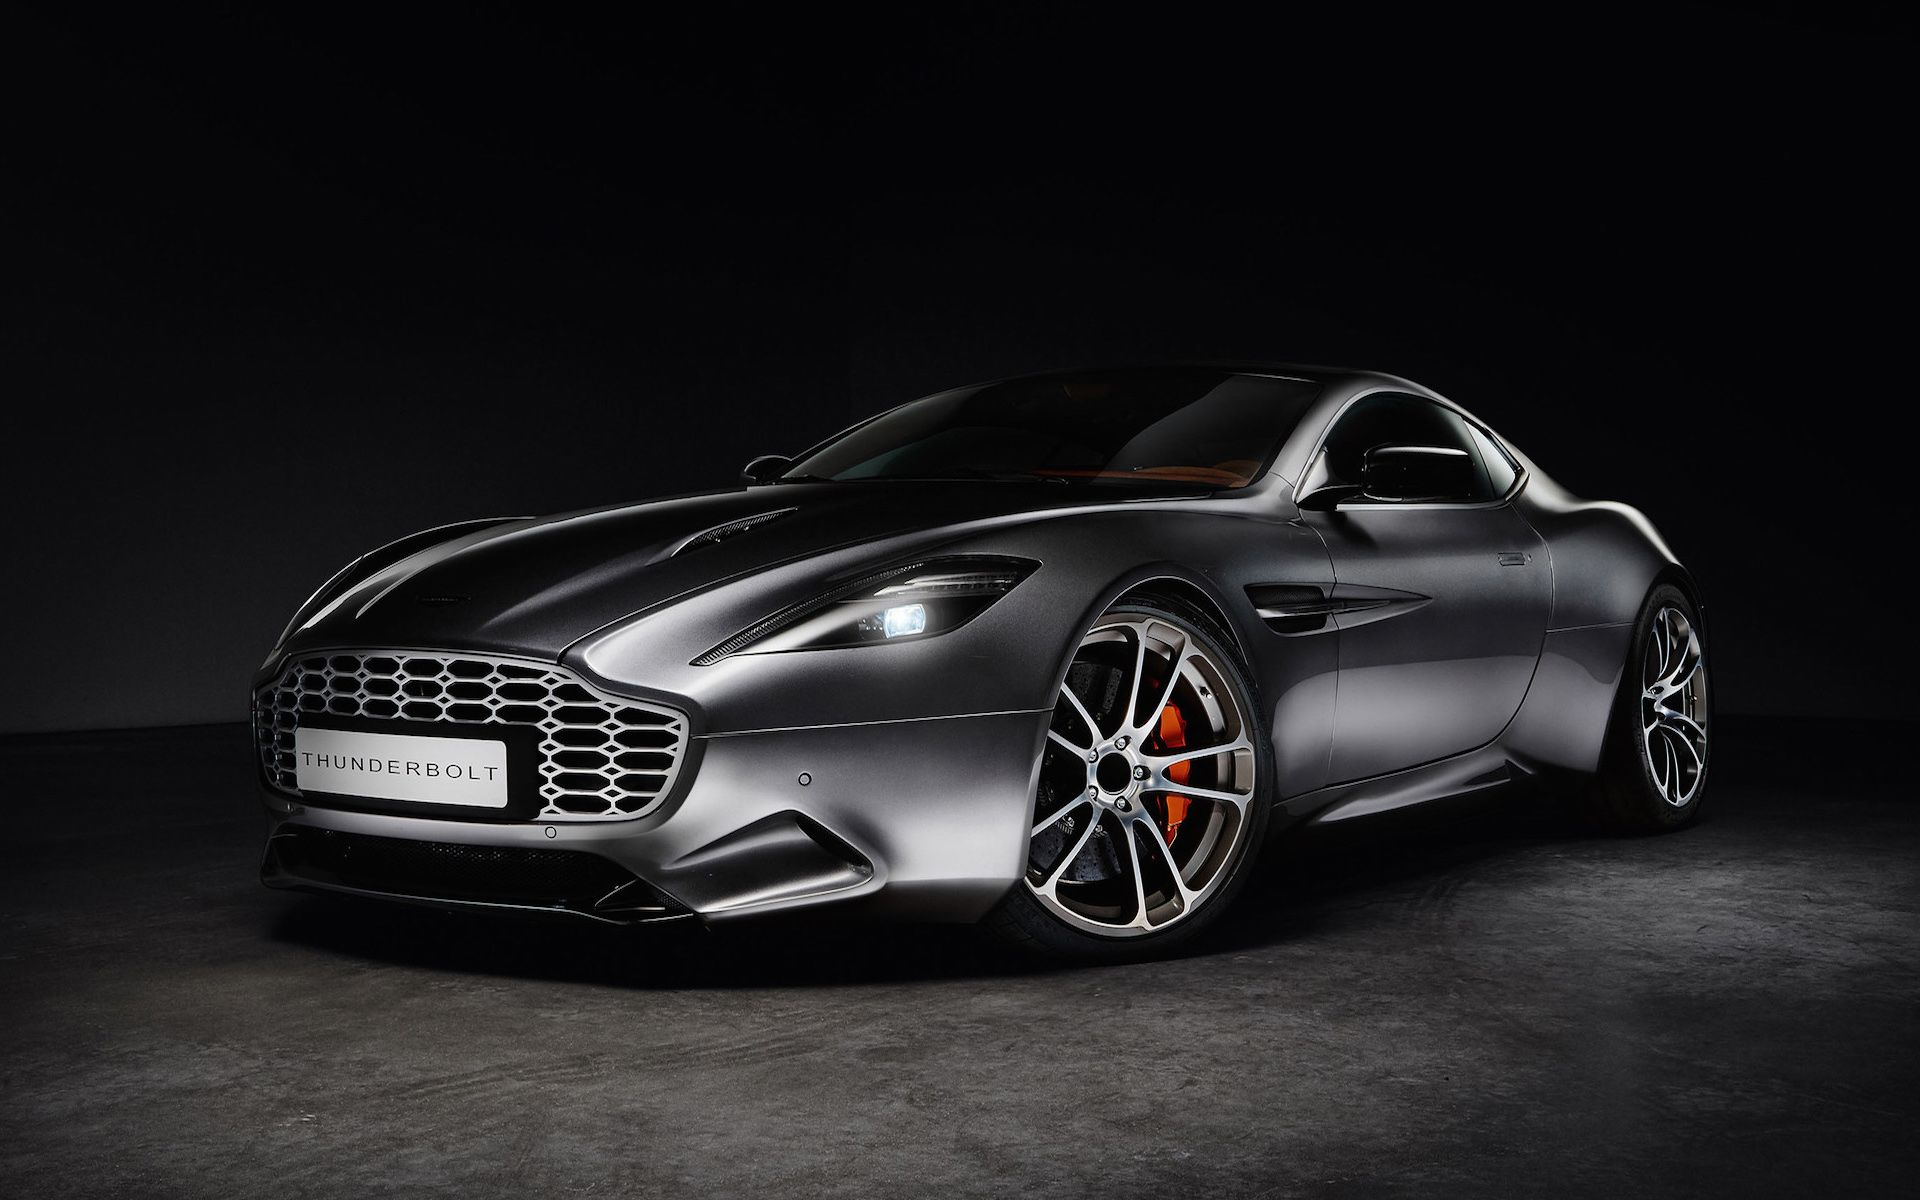 Aston Martin Vanquish Thunderbolt Wallpapers